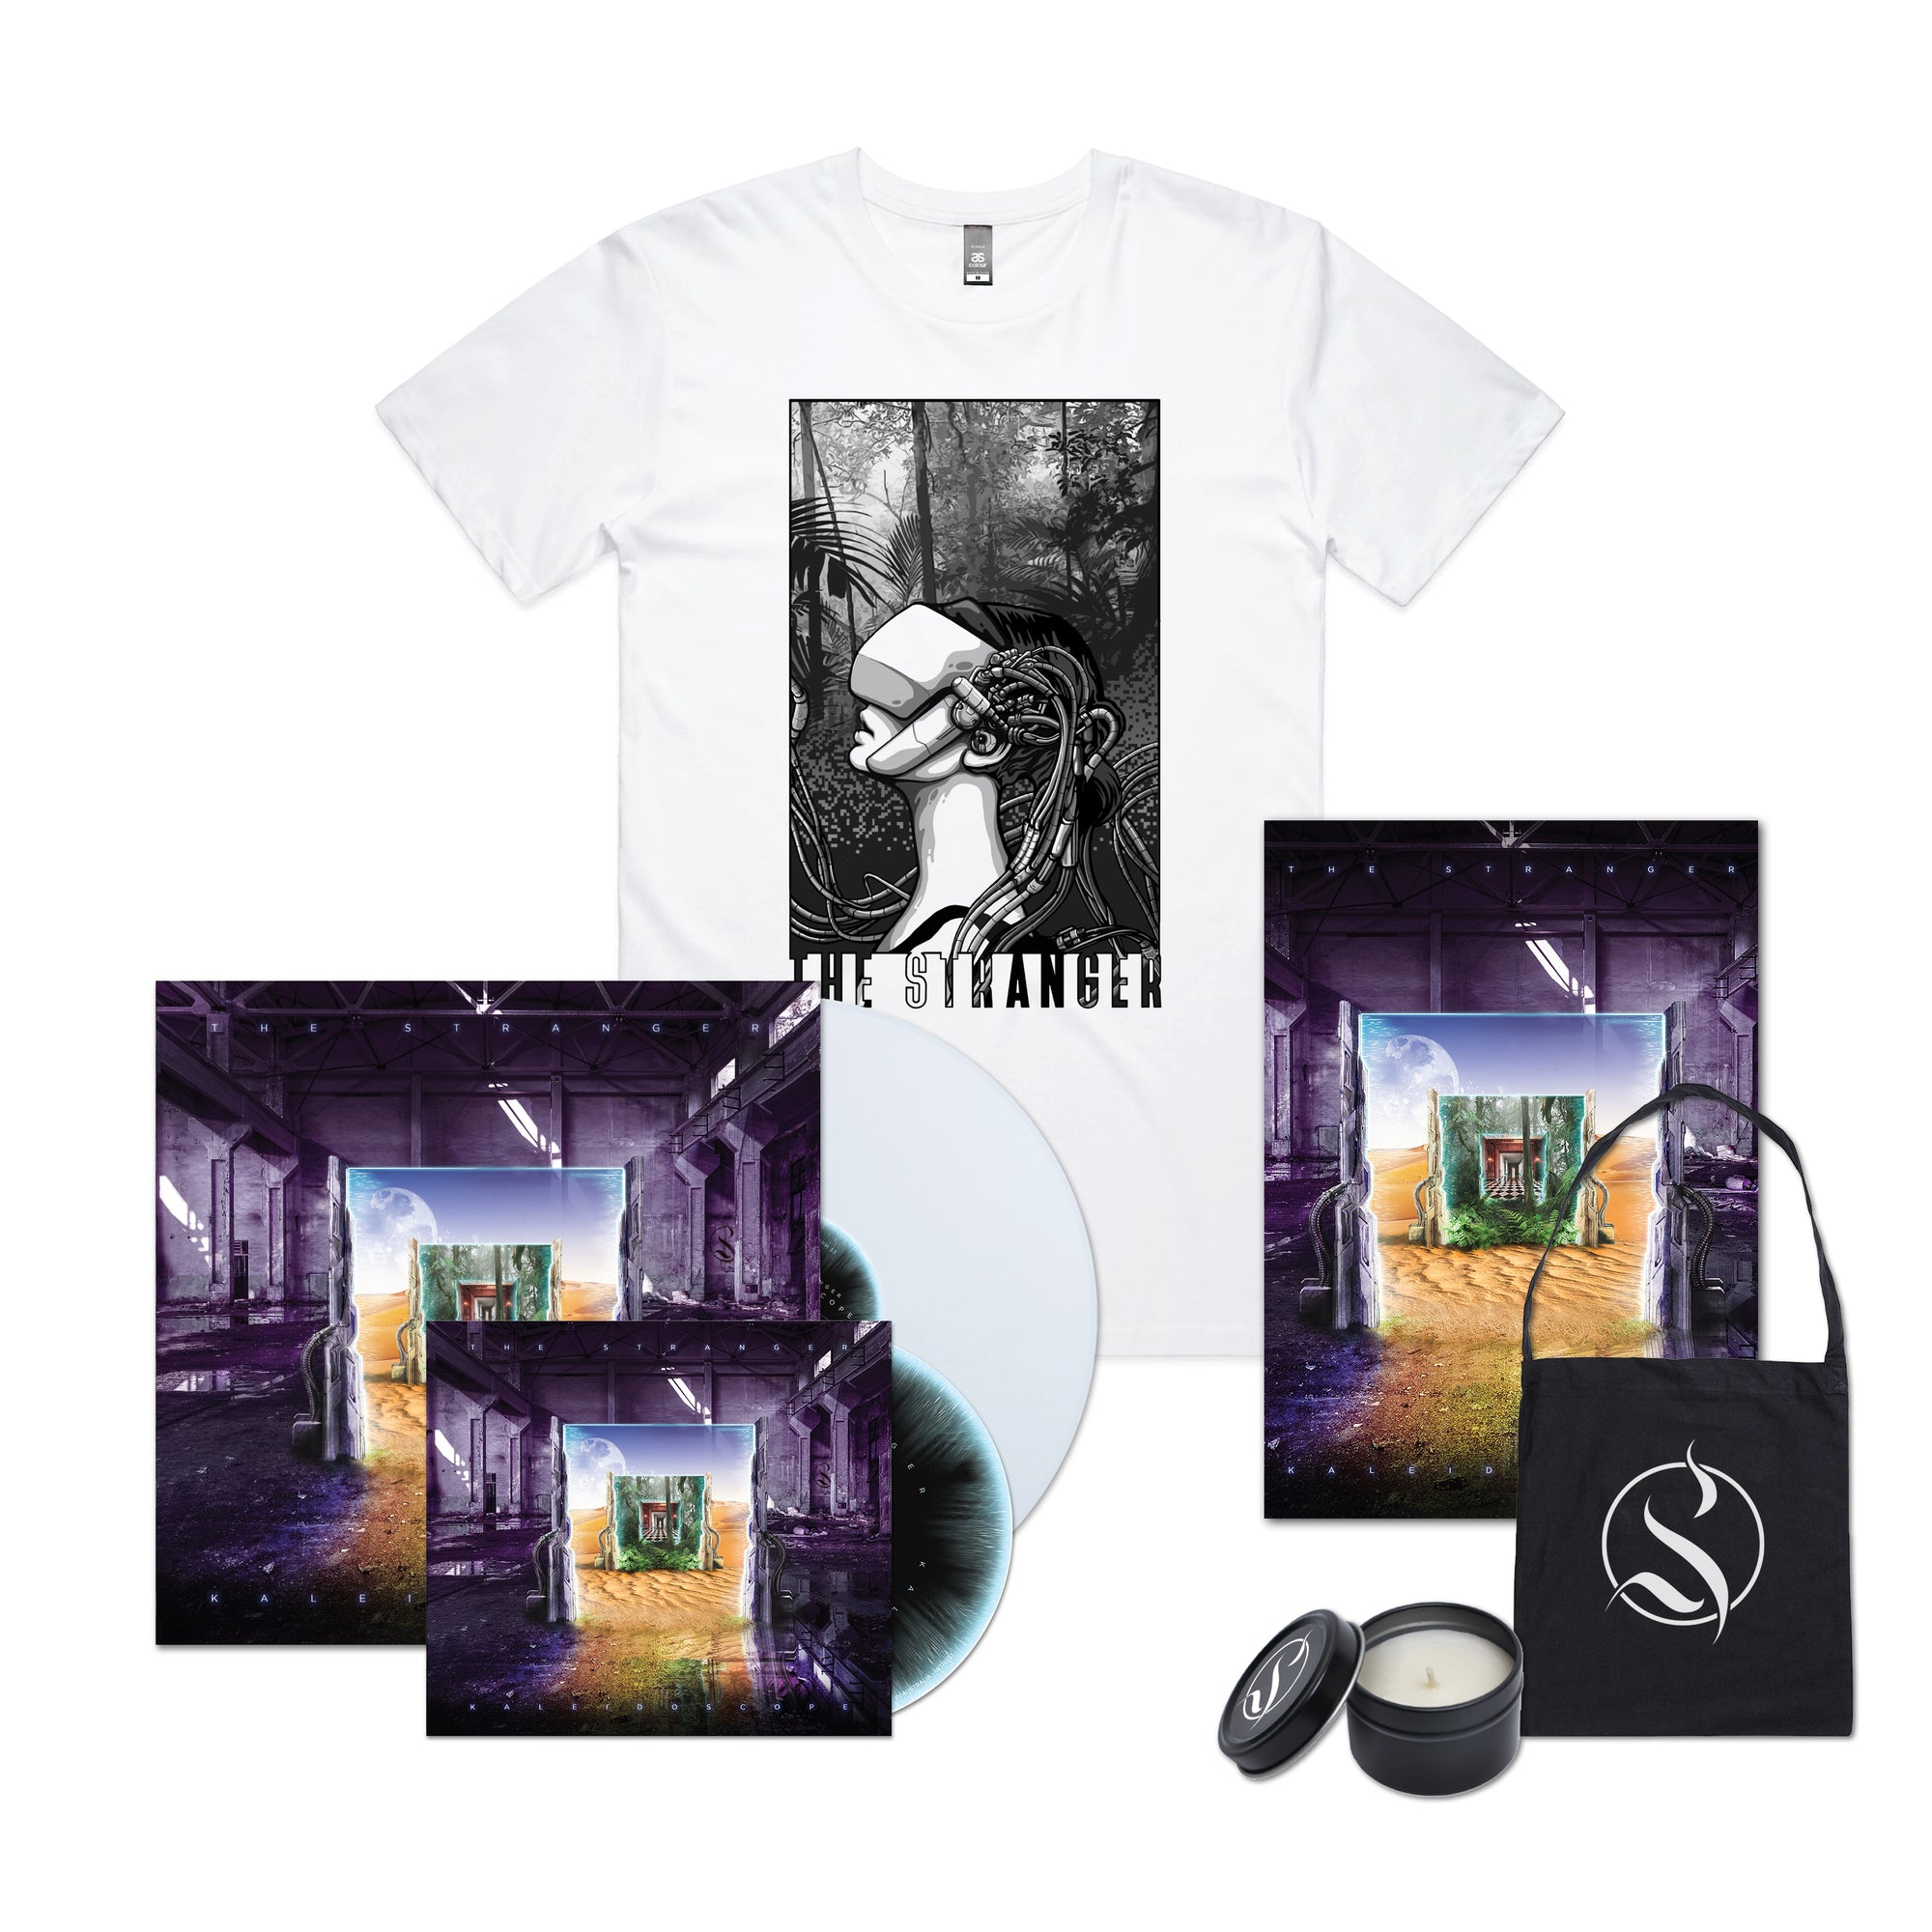 THE STRANGER // KALEIDOSCOPE - COMPLETE BUNDLE